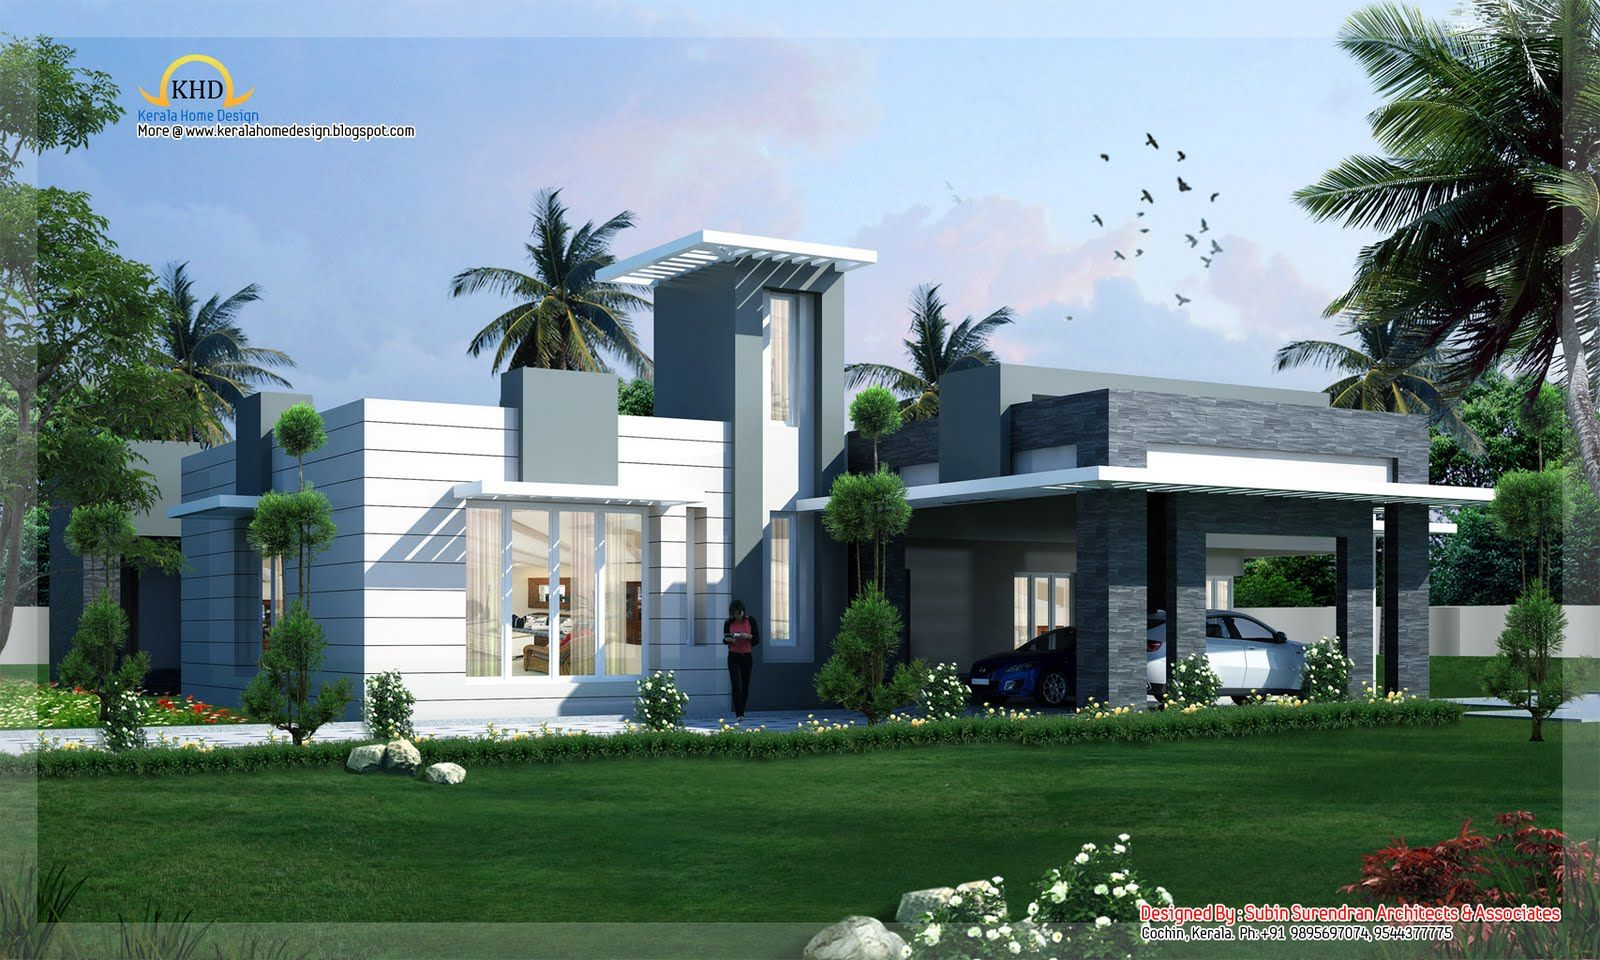 new house designs | contemporary home design - 418 sq m (4500 sq